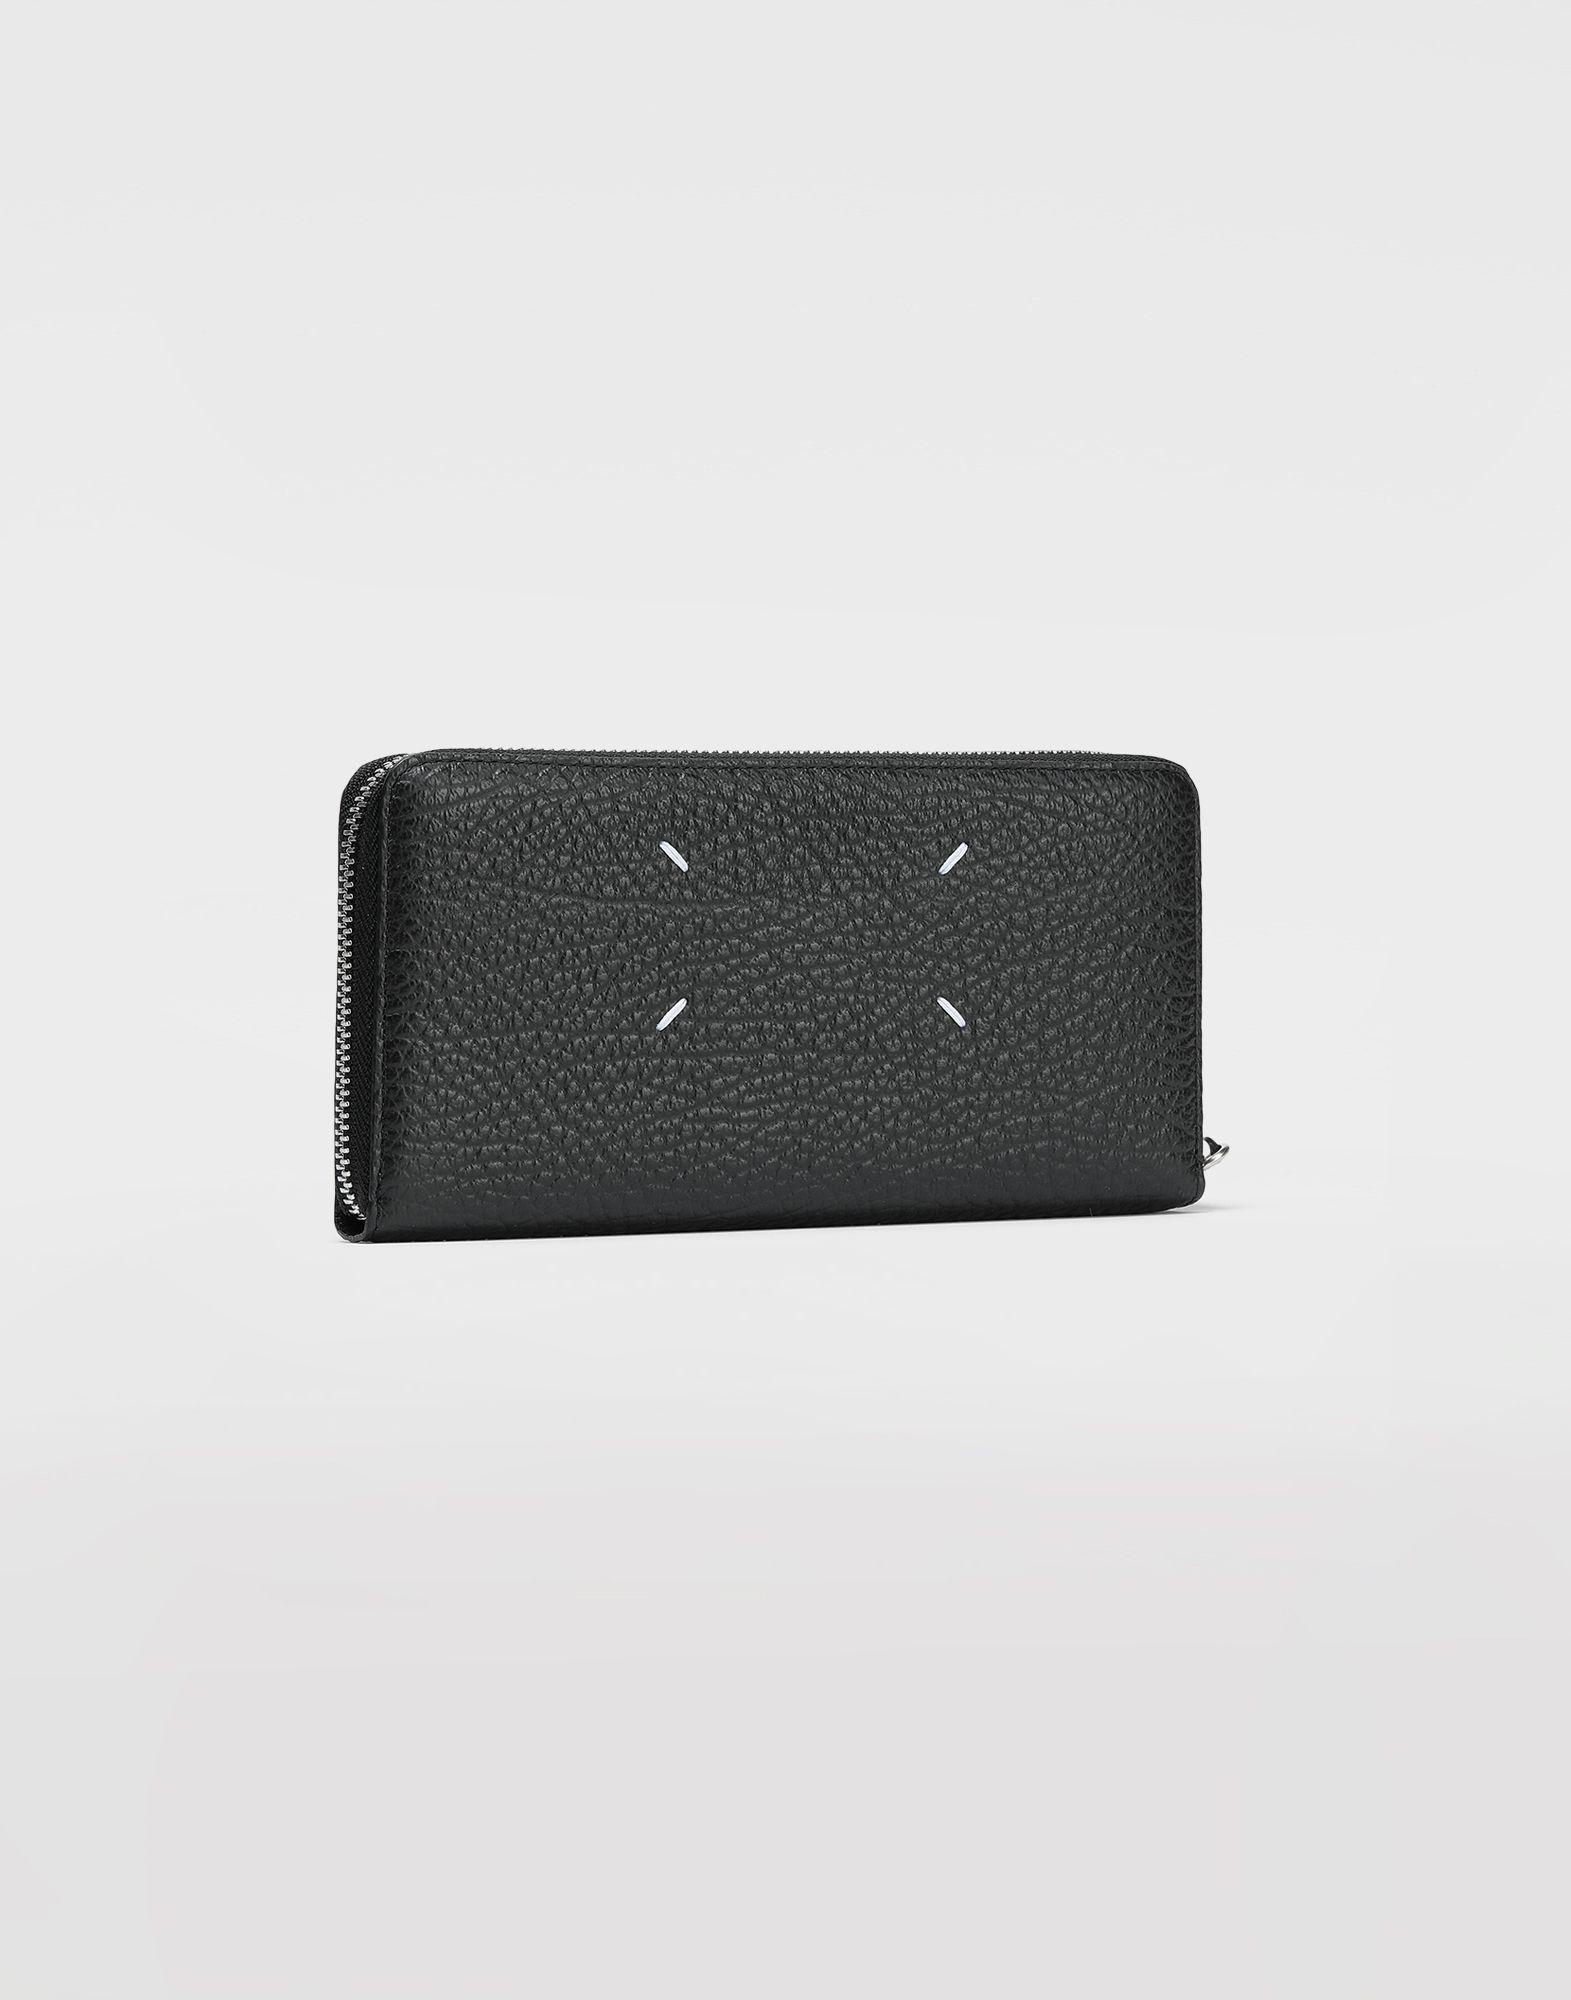 MAISON MARGIELA Black compagnon wallet Wallets Woman r